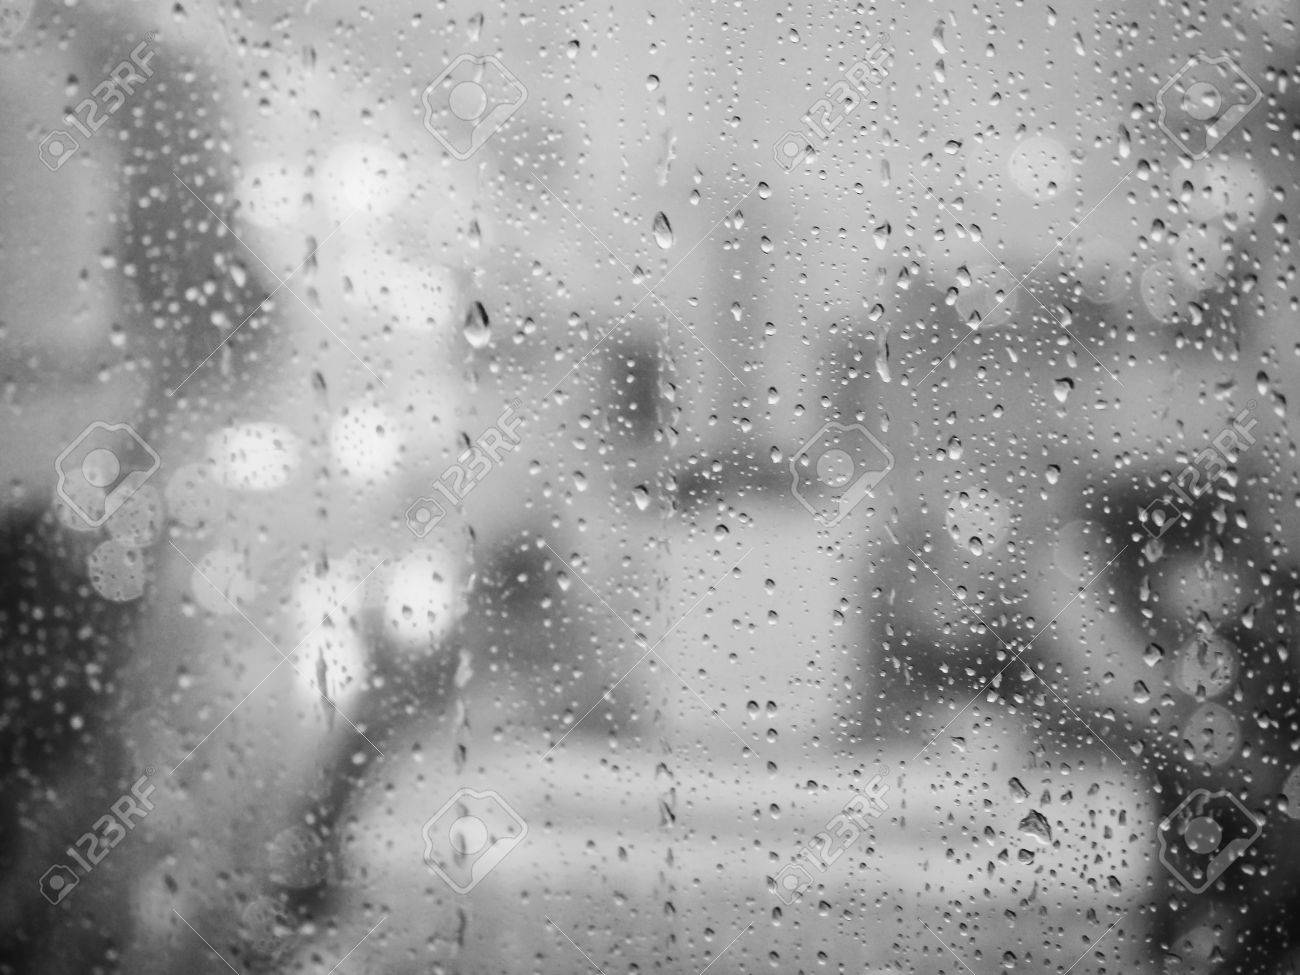 Rainy day black and white blur background